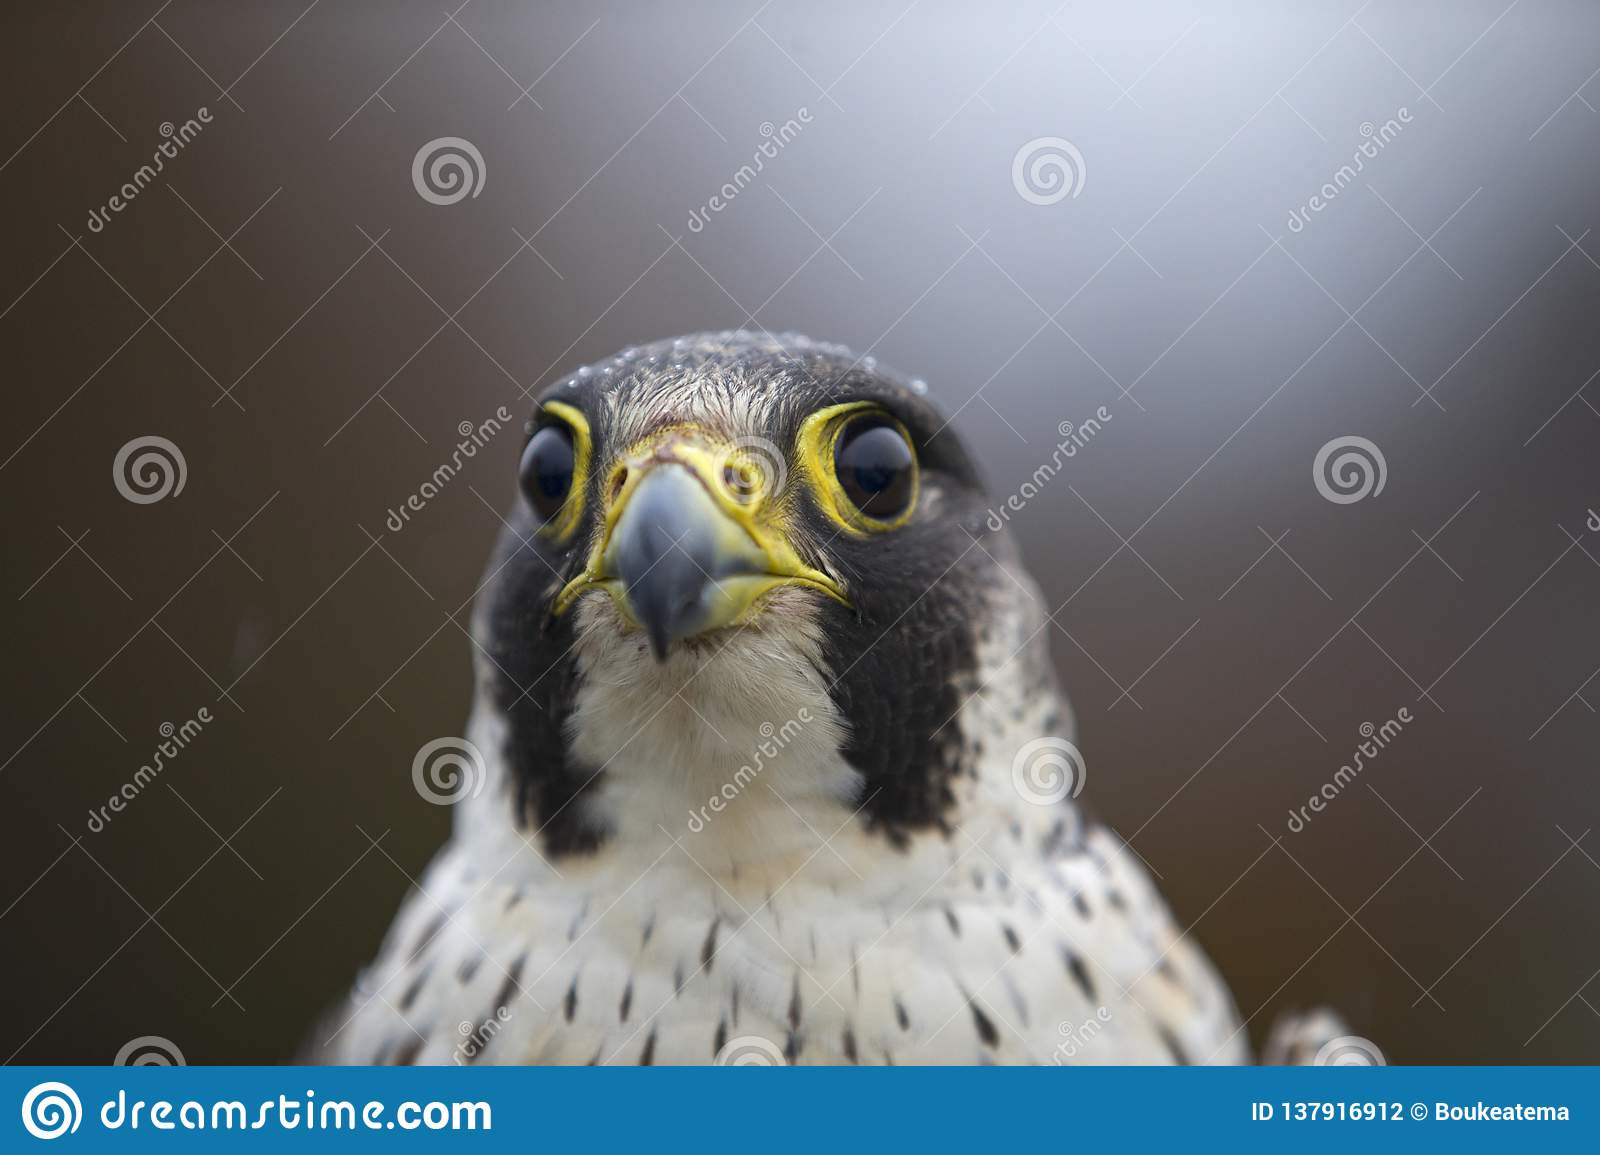 A portrait of a Female Peregrine falcon Falco peregrinus caught in Germany for ringing.